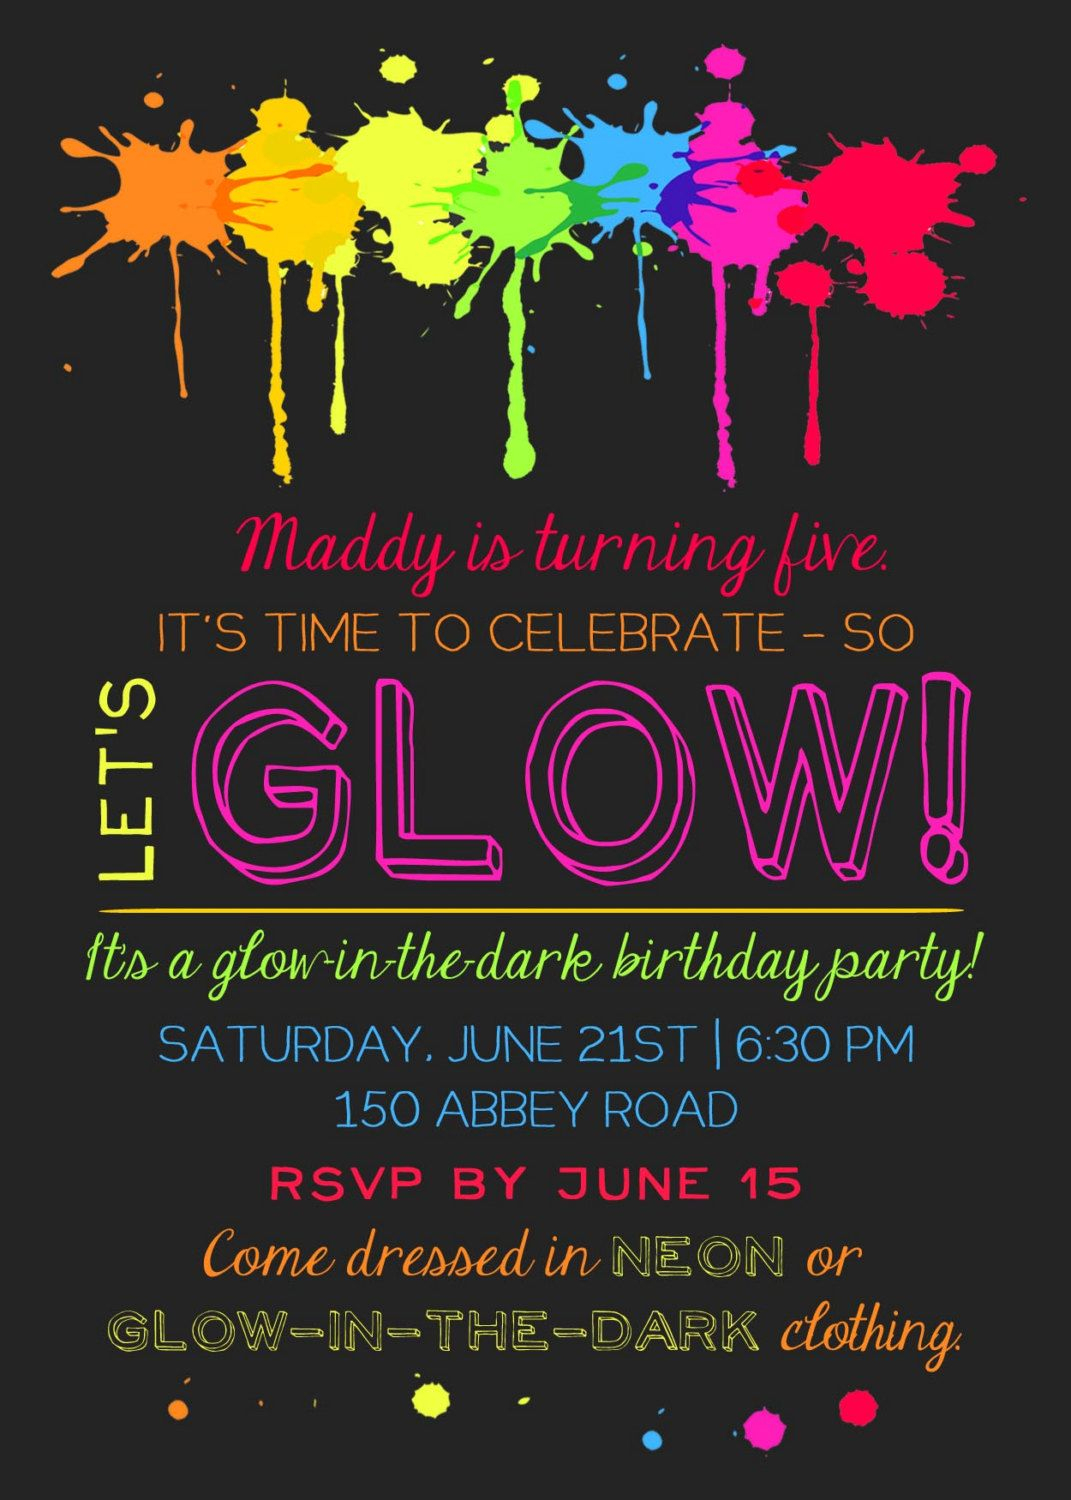 Printable Glow In The Dark Theme Party Invitation - Free Printable Glow In The Dark Birthday Party Invitations